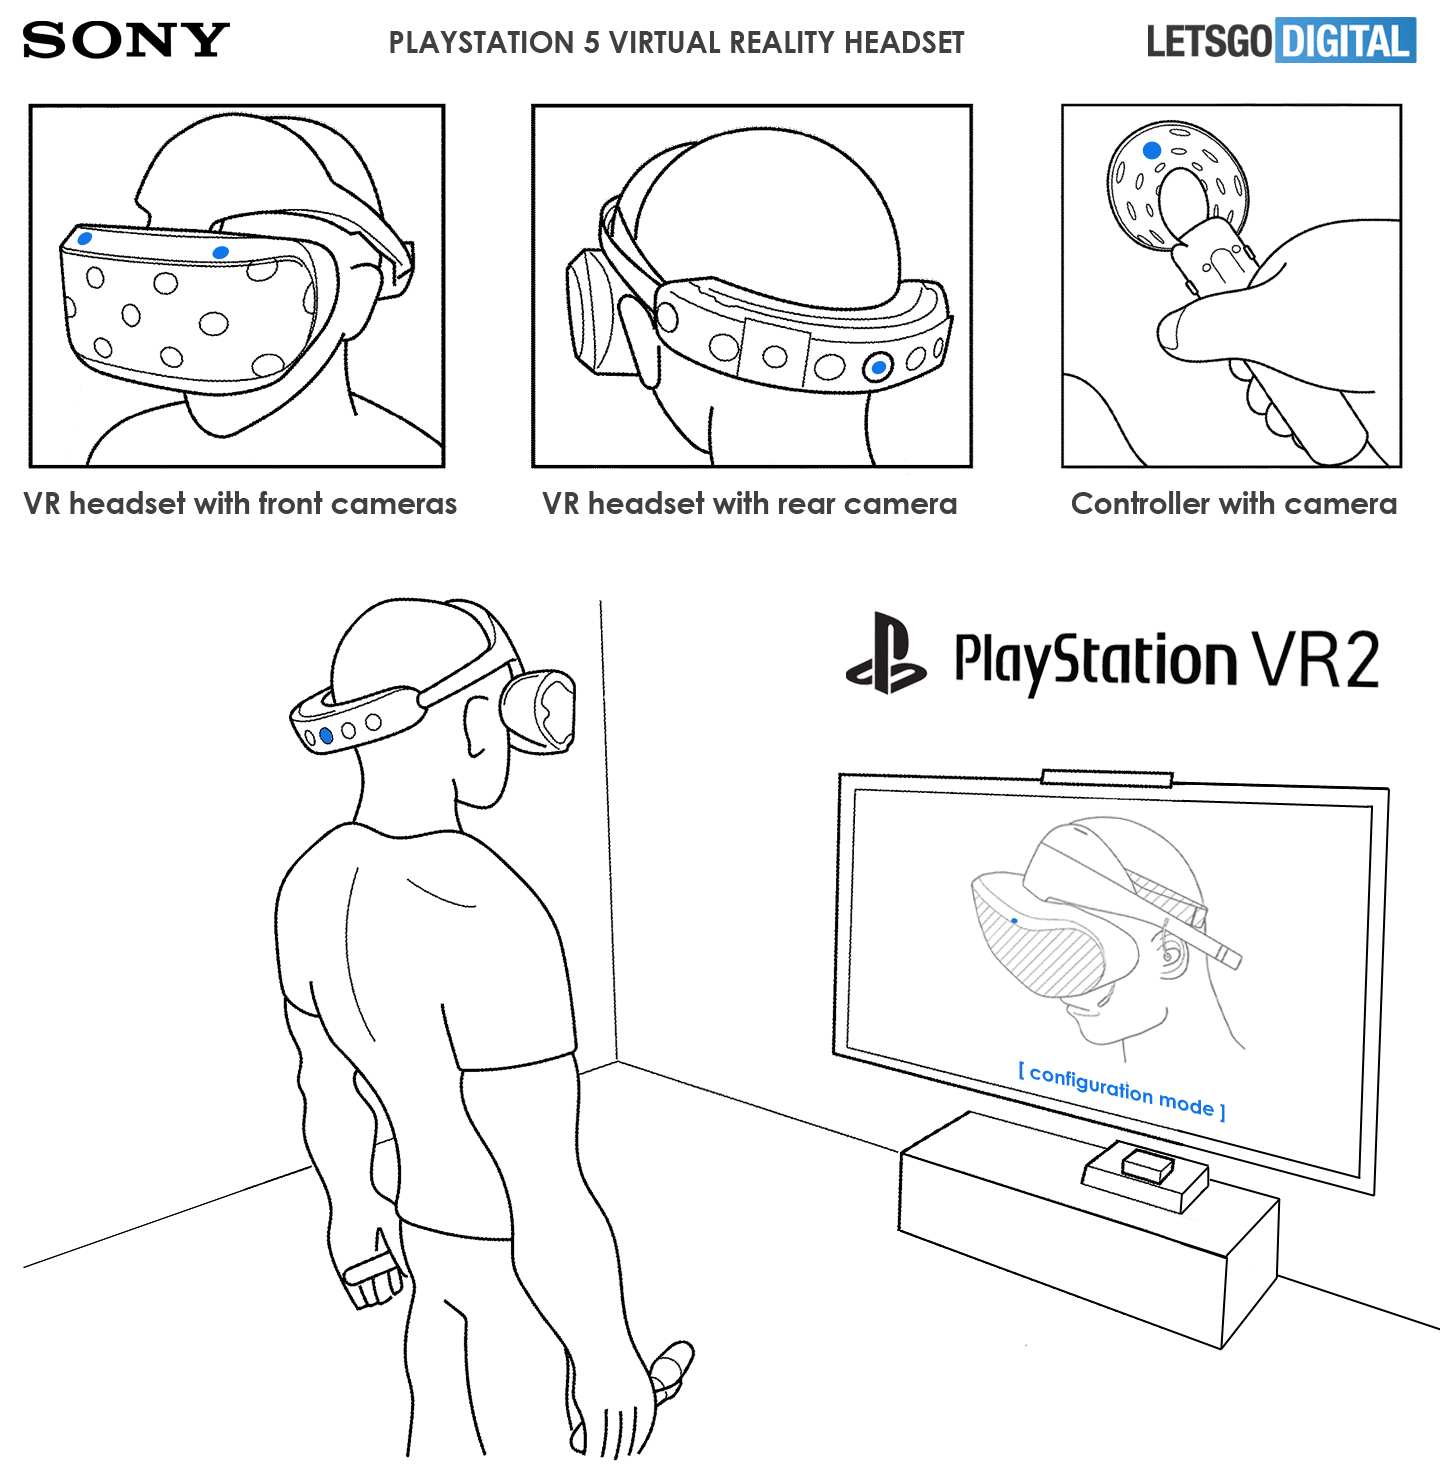 Sony Playstation 5 PSVR2 headset